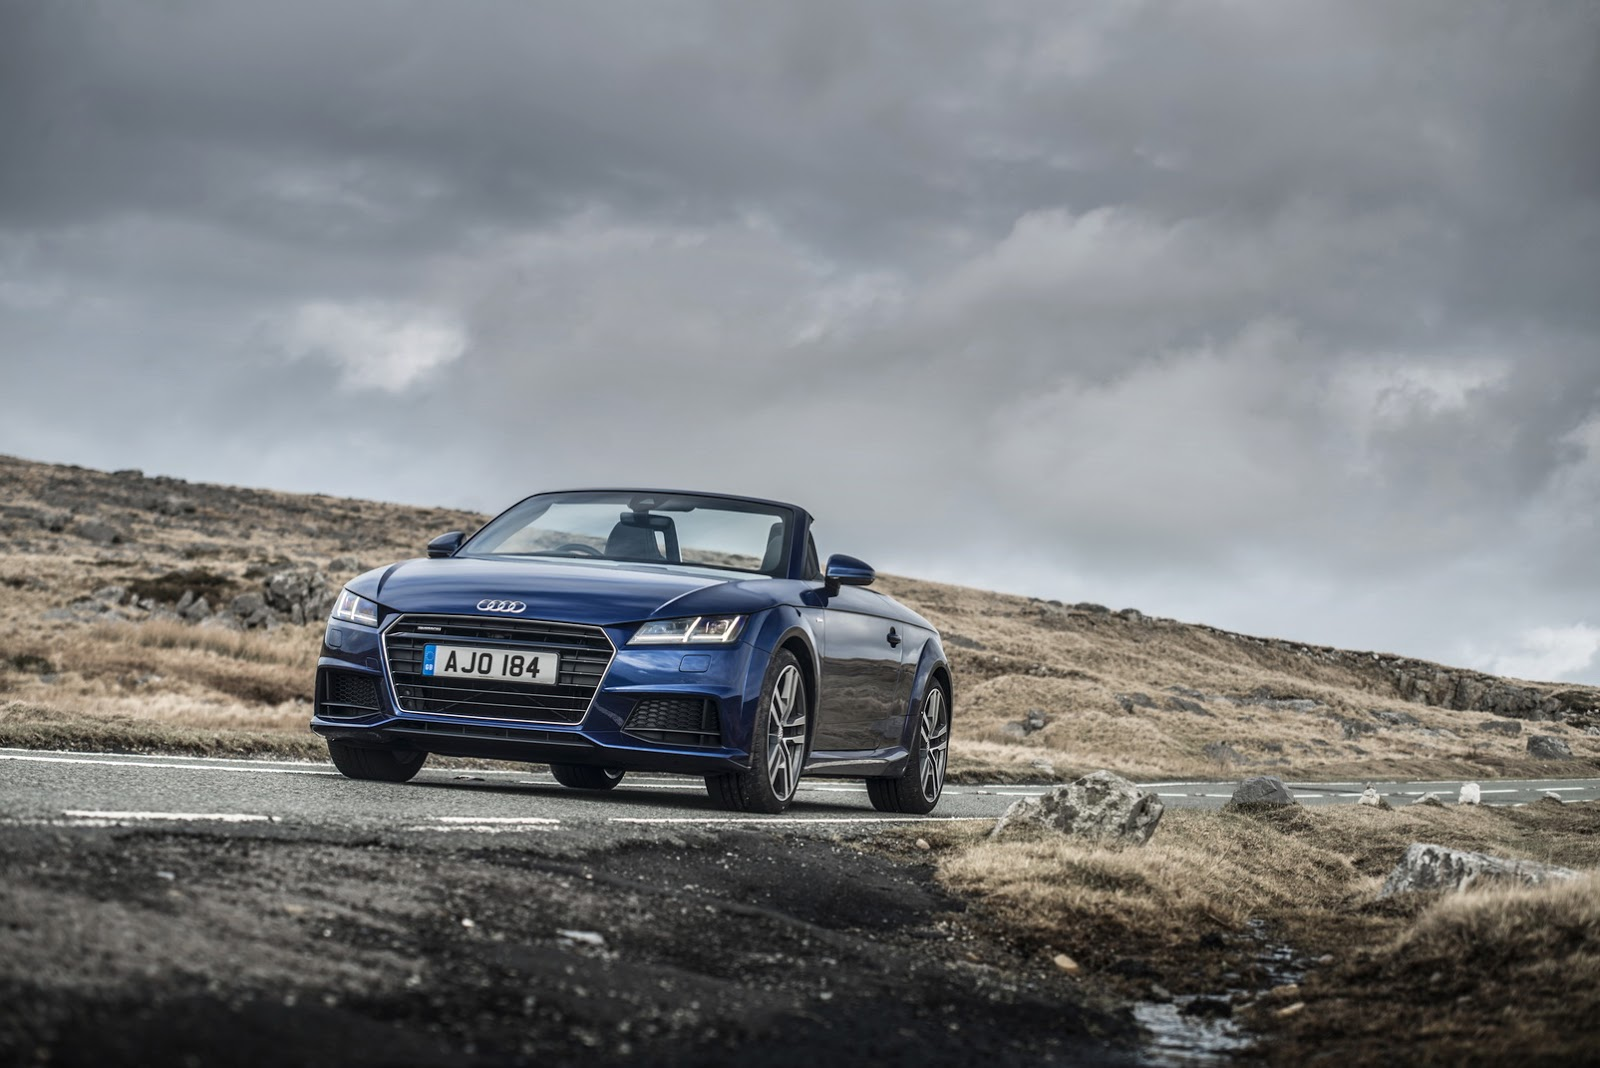 2017 audi tt tdi quattro lands in britain as coupe and. Black Bedroom Furniture Sets. Home Design Ideas